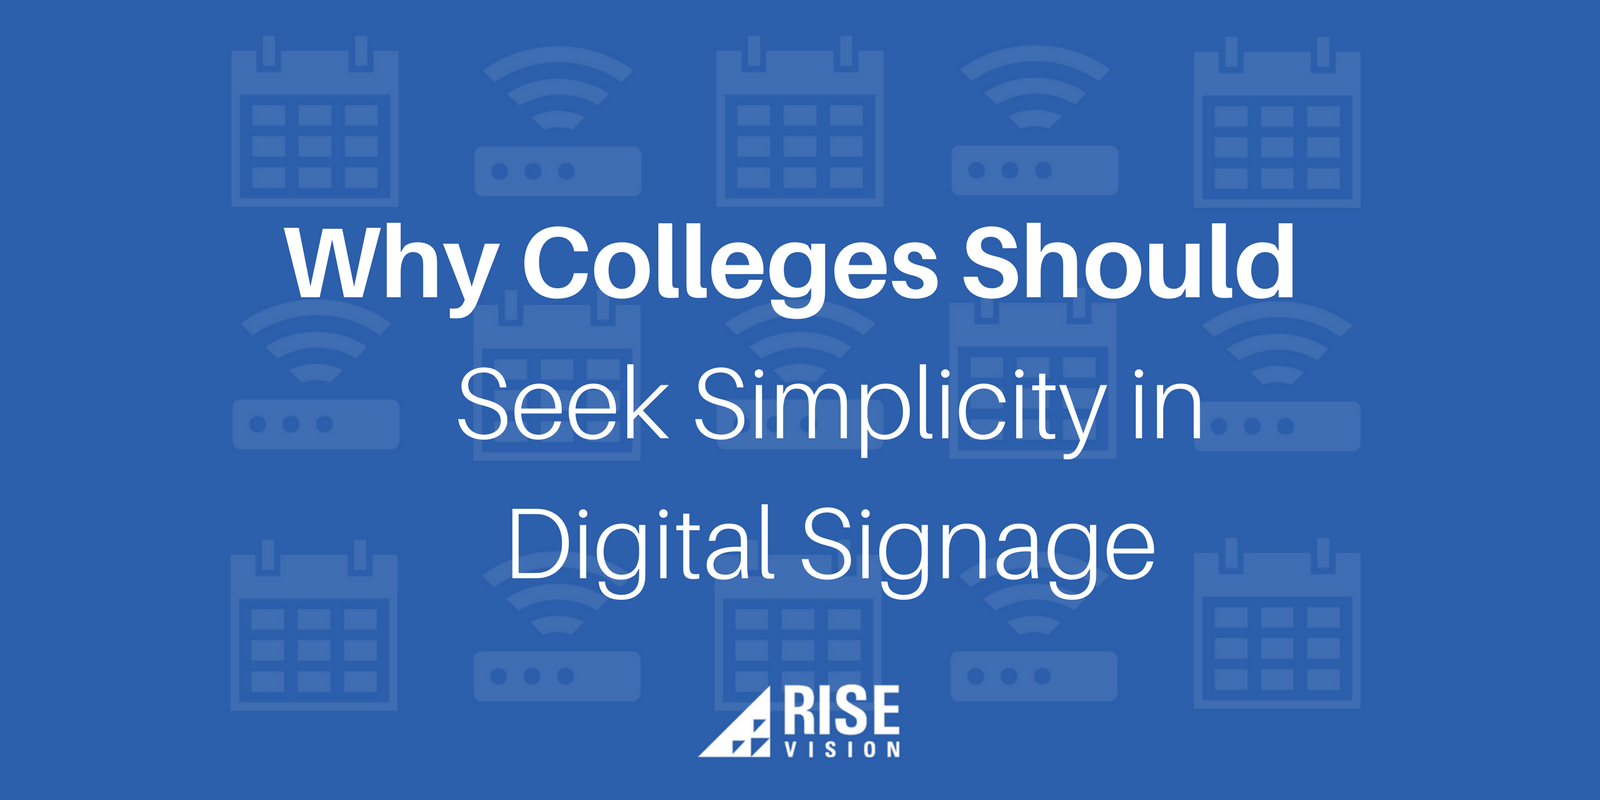 Rise Vision Digital Signage Education Simplicity.png